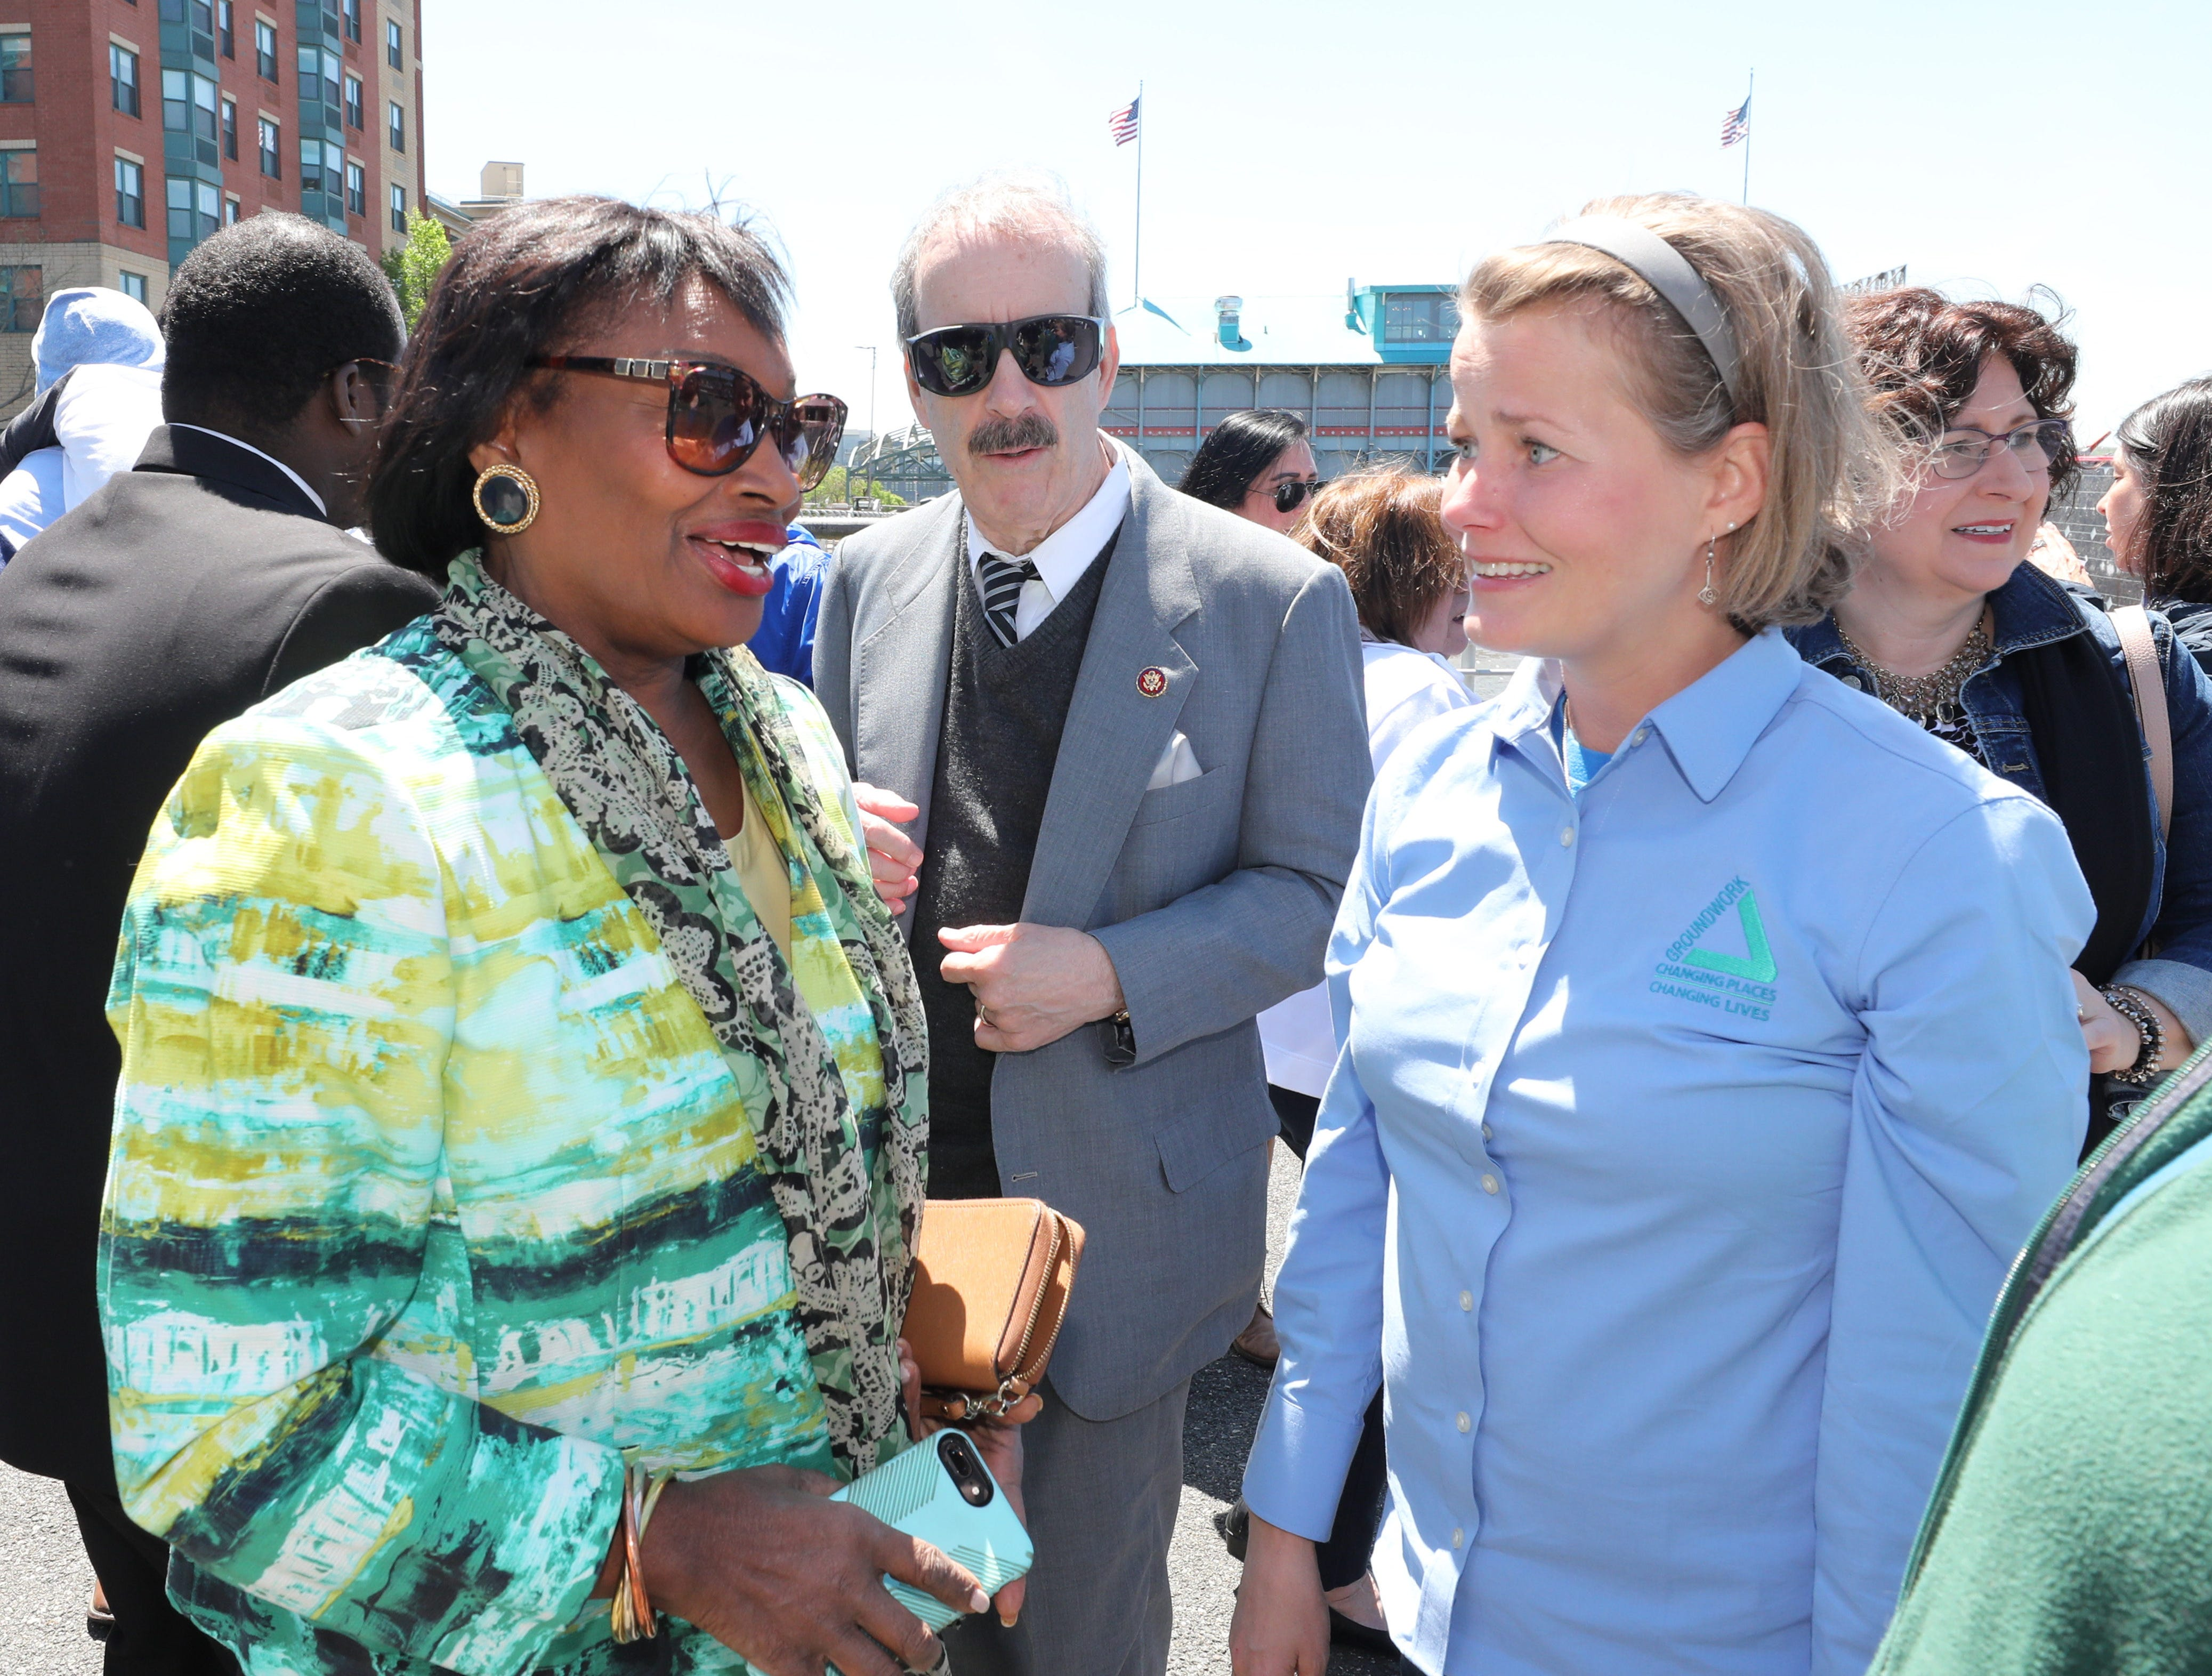 NYS Senator Andrea Stewart-Cousins, U.S. Rep Eliot Engel and Brigitte Griswold, the executive director of Groundwork Hudson Valley, are pictured during the 11th annual opening of the Science Barge  on the Hudson River in Yonkers, May 11, 2019. The floating environmental education center has undergone an almost $1million enhancement, completed over the past two years.